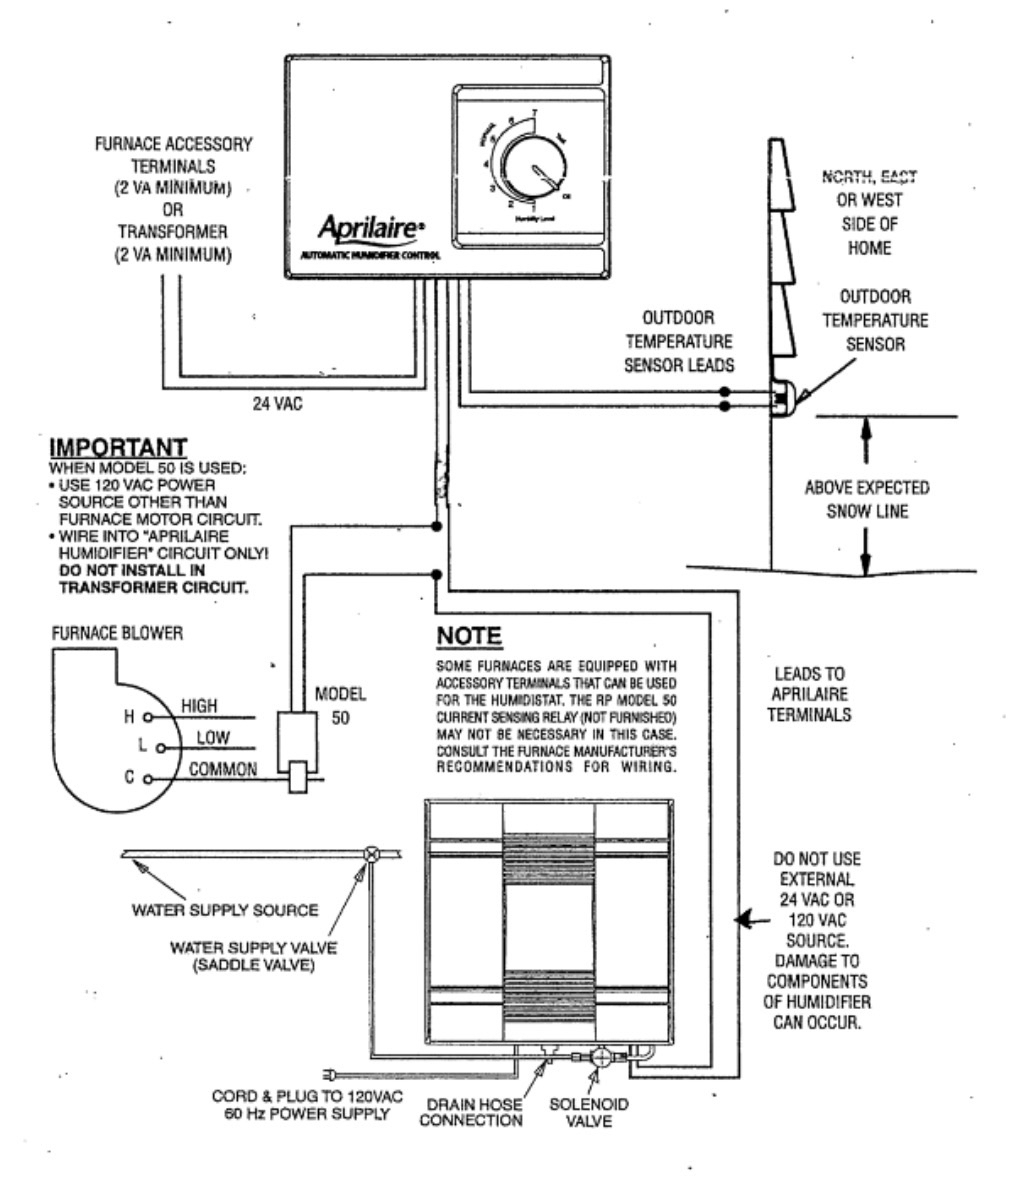 Aprilaire Current Sensing Relay Wiring Diagram | Wiring Diagram - Aprilaire 600 Wiring Diagram